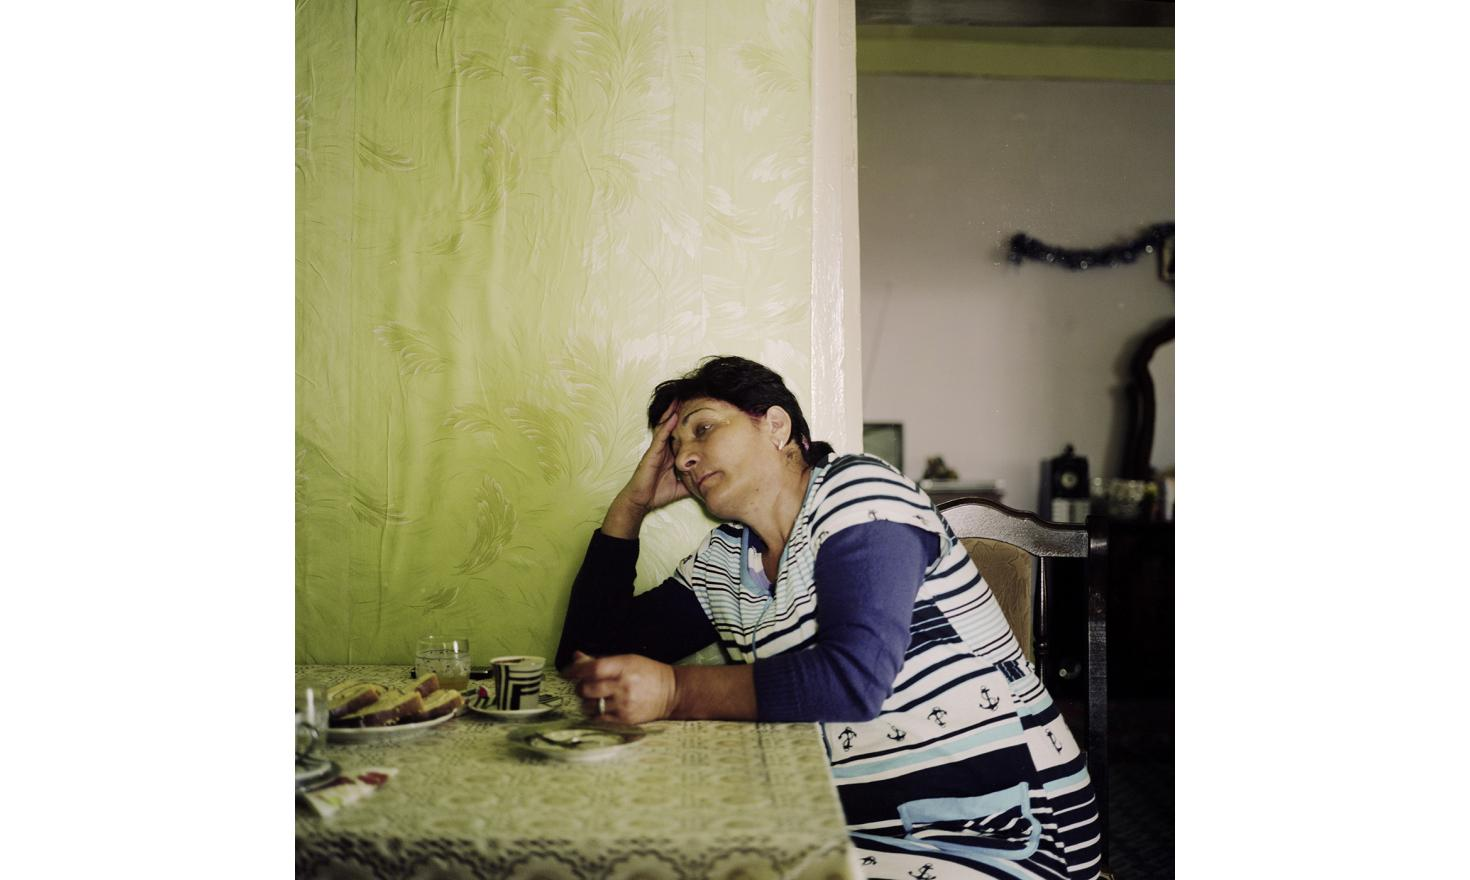 Anik. Her husband, her son and the husband of her daughter work in Russia. She must organize the wedding of her son but she has not yet found him a wife. She already bought the engagement ring and the couple's room is ready for them to move in.